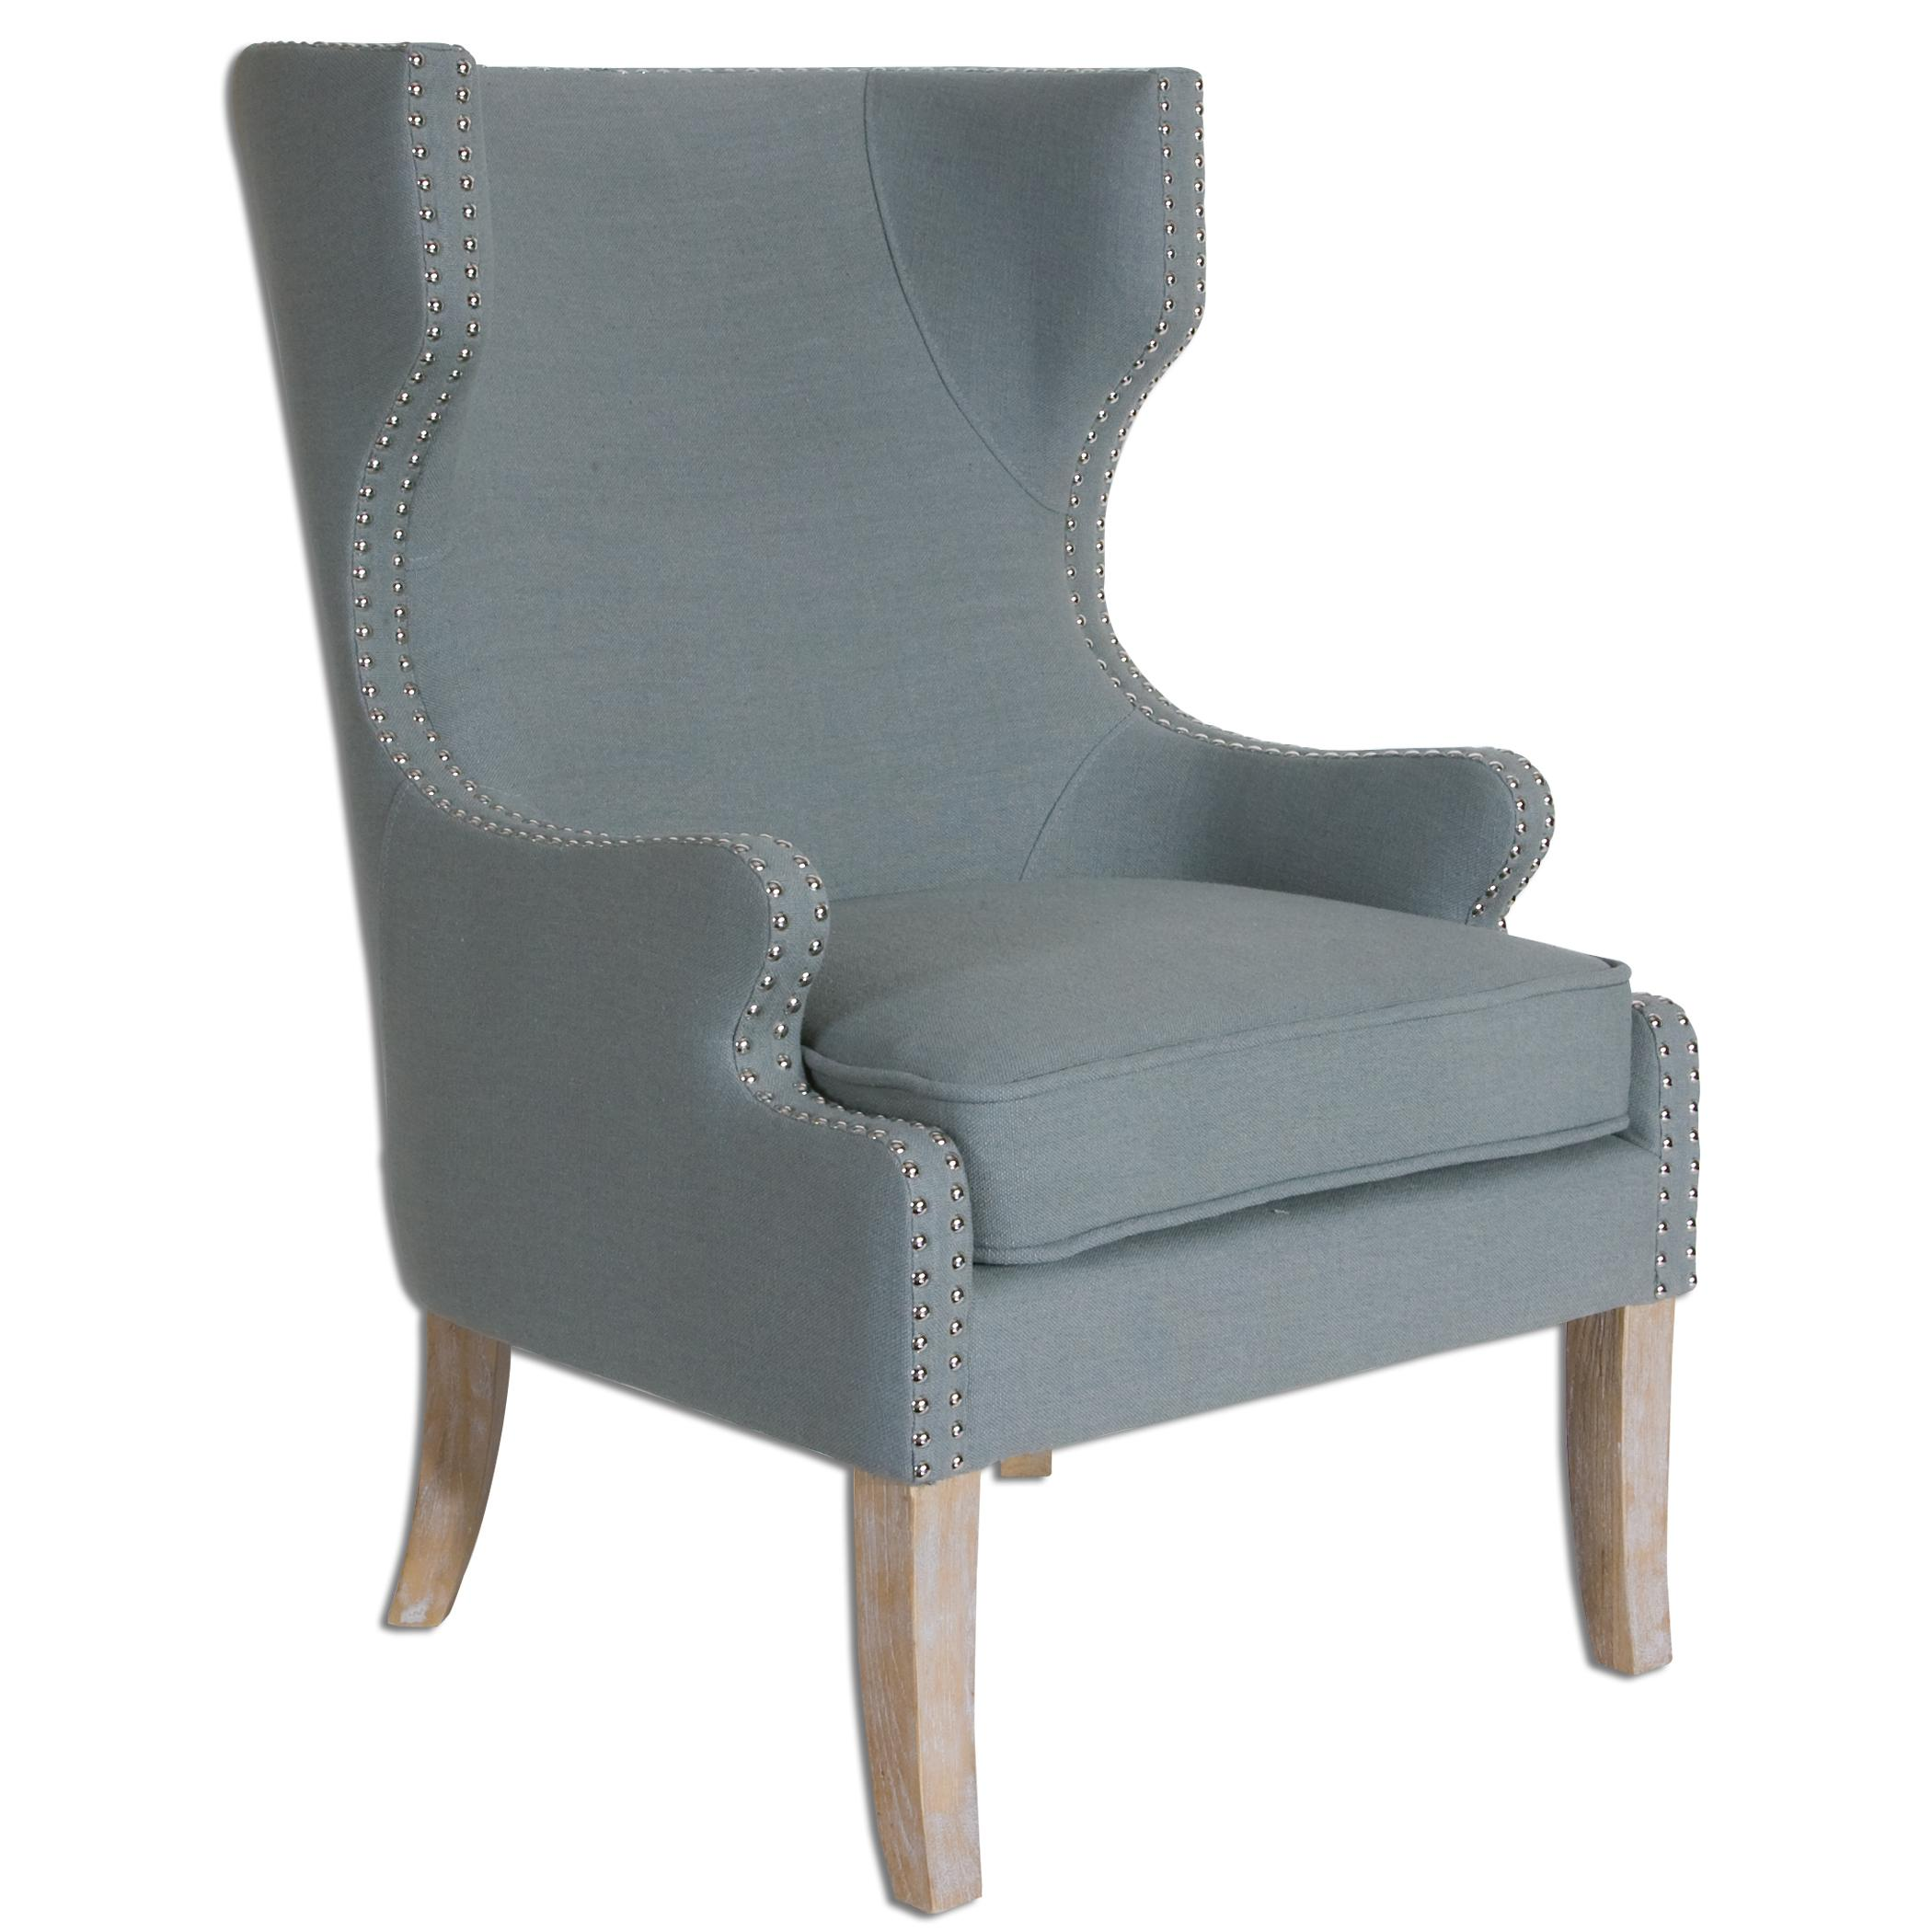 Uttermost Accent Furniture Graycie High Back Wing Chair - Item Number: 23136